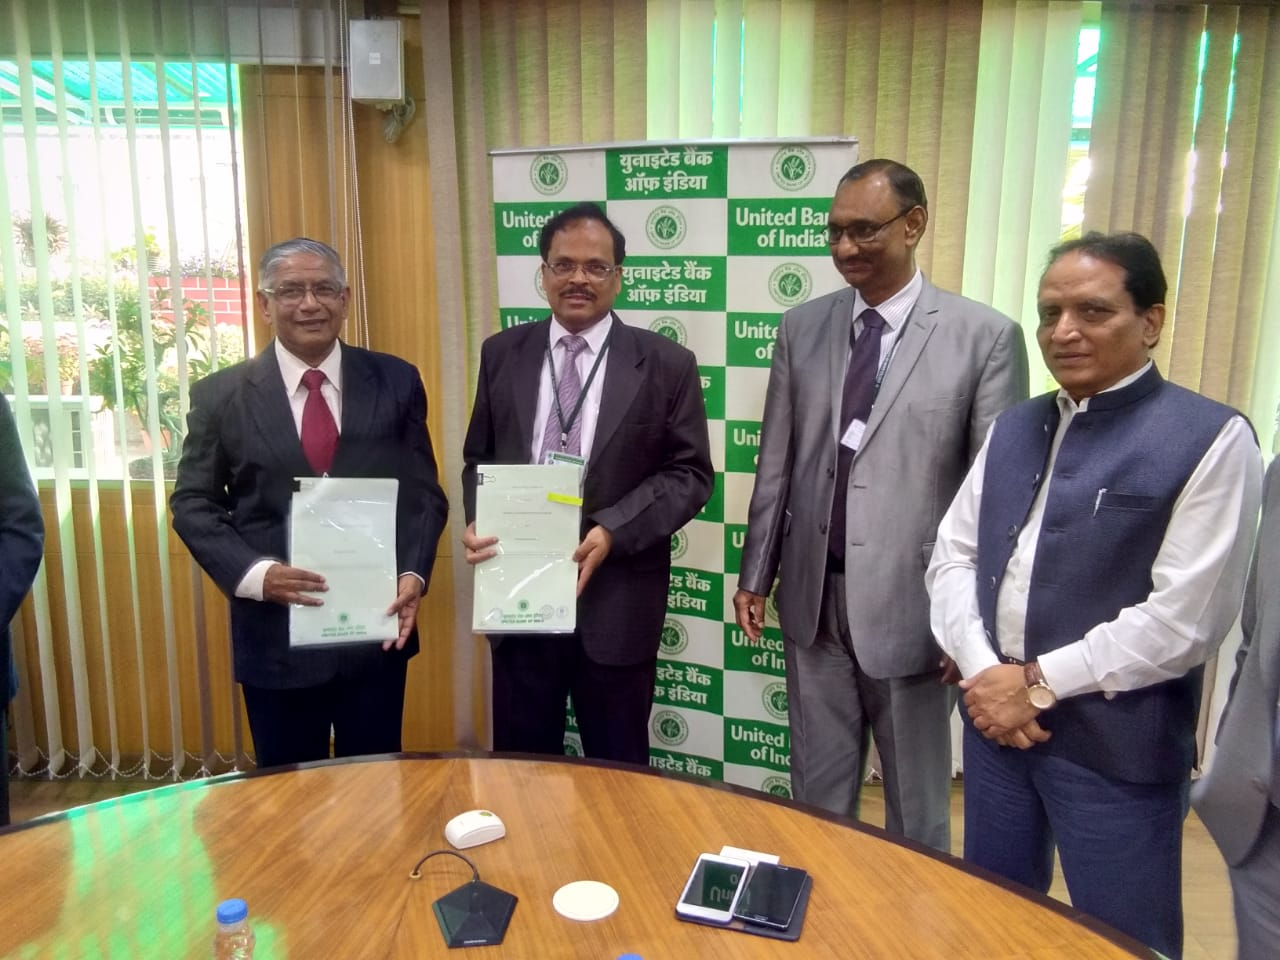 nesl2 - United Bank of India has entered into IU Agreement with NESL on 18th Feb  2019 for availing IU Services.